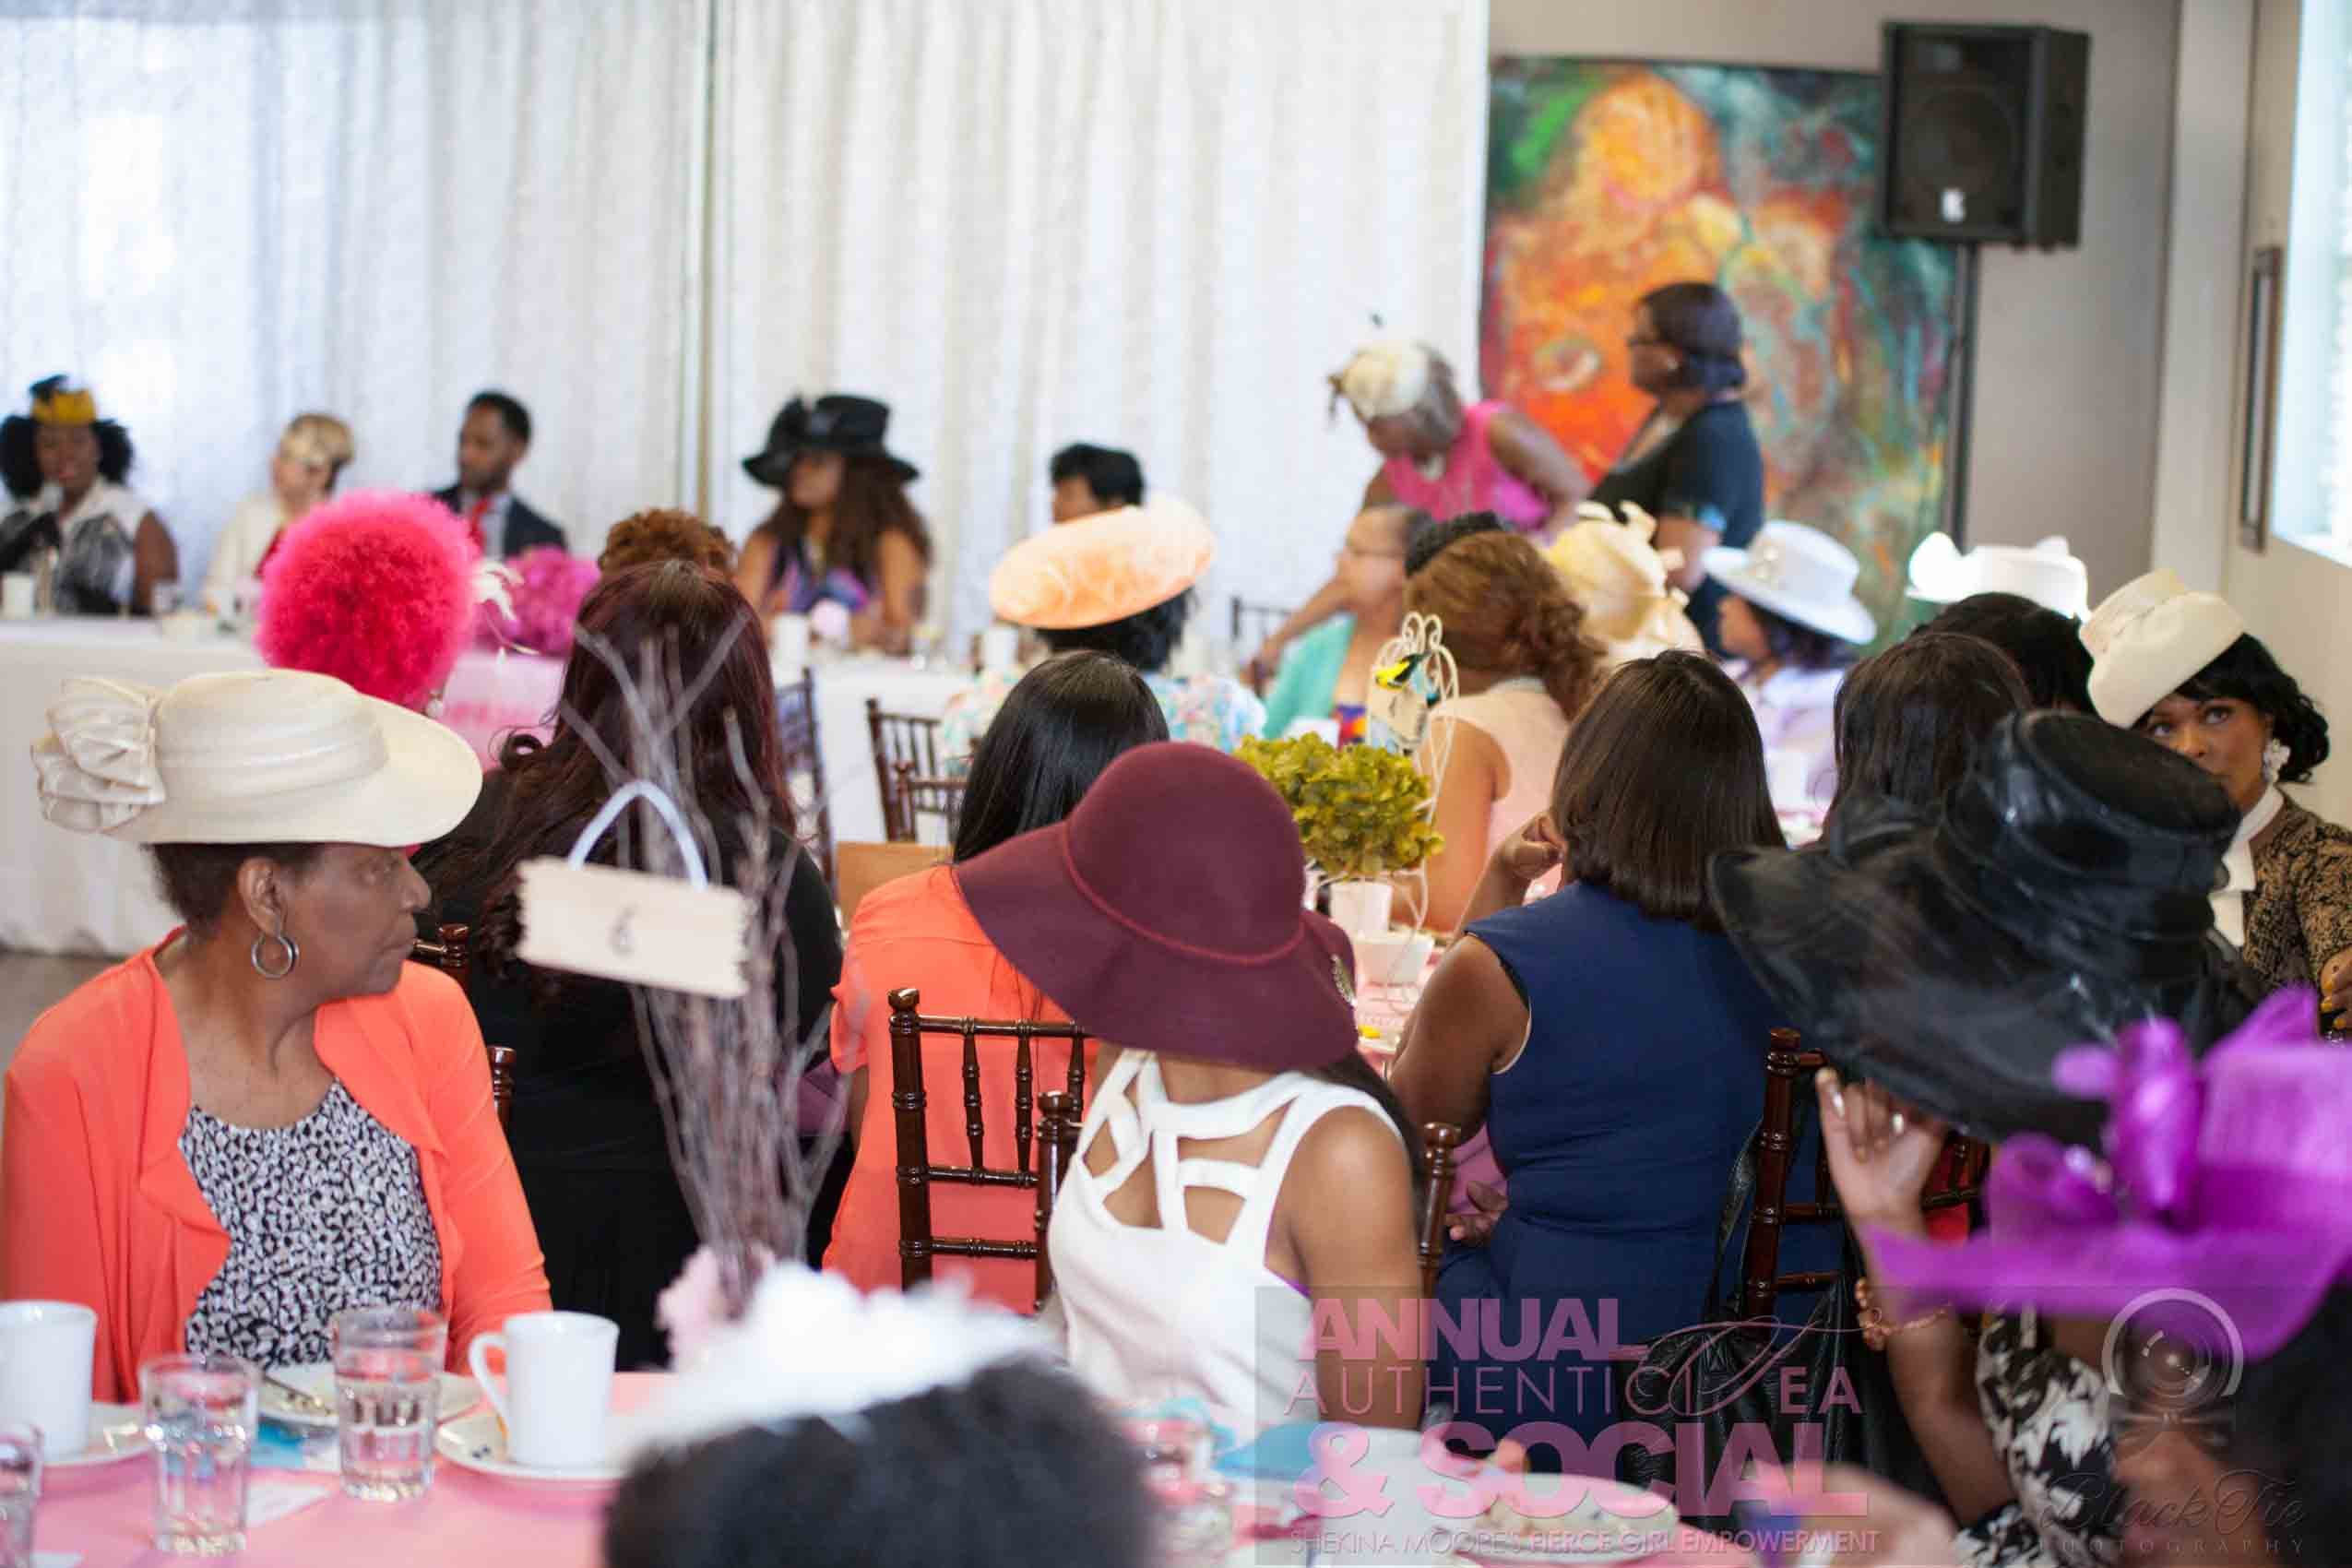 Annual Authentic Tea & Social_-282.jpg